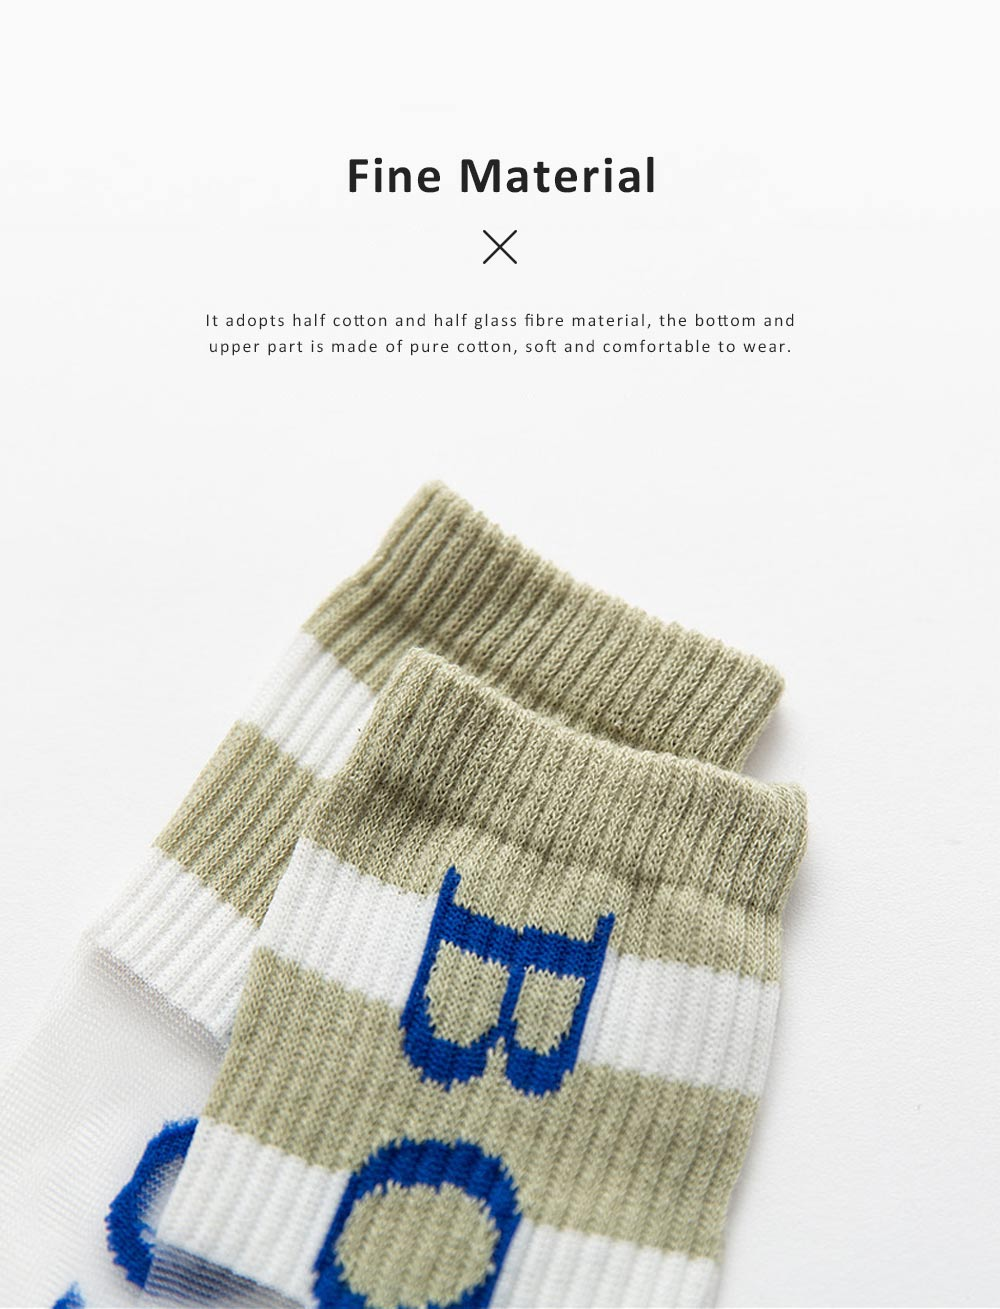 2019 Latest Fashionable Monogrammed Socks for Children, Glass Fibre Material Over-the-knee Mid-calf Length Socks 3